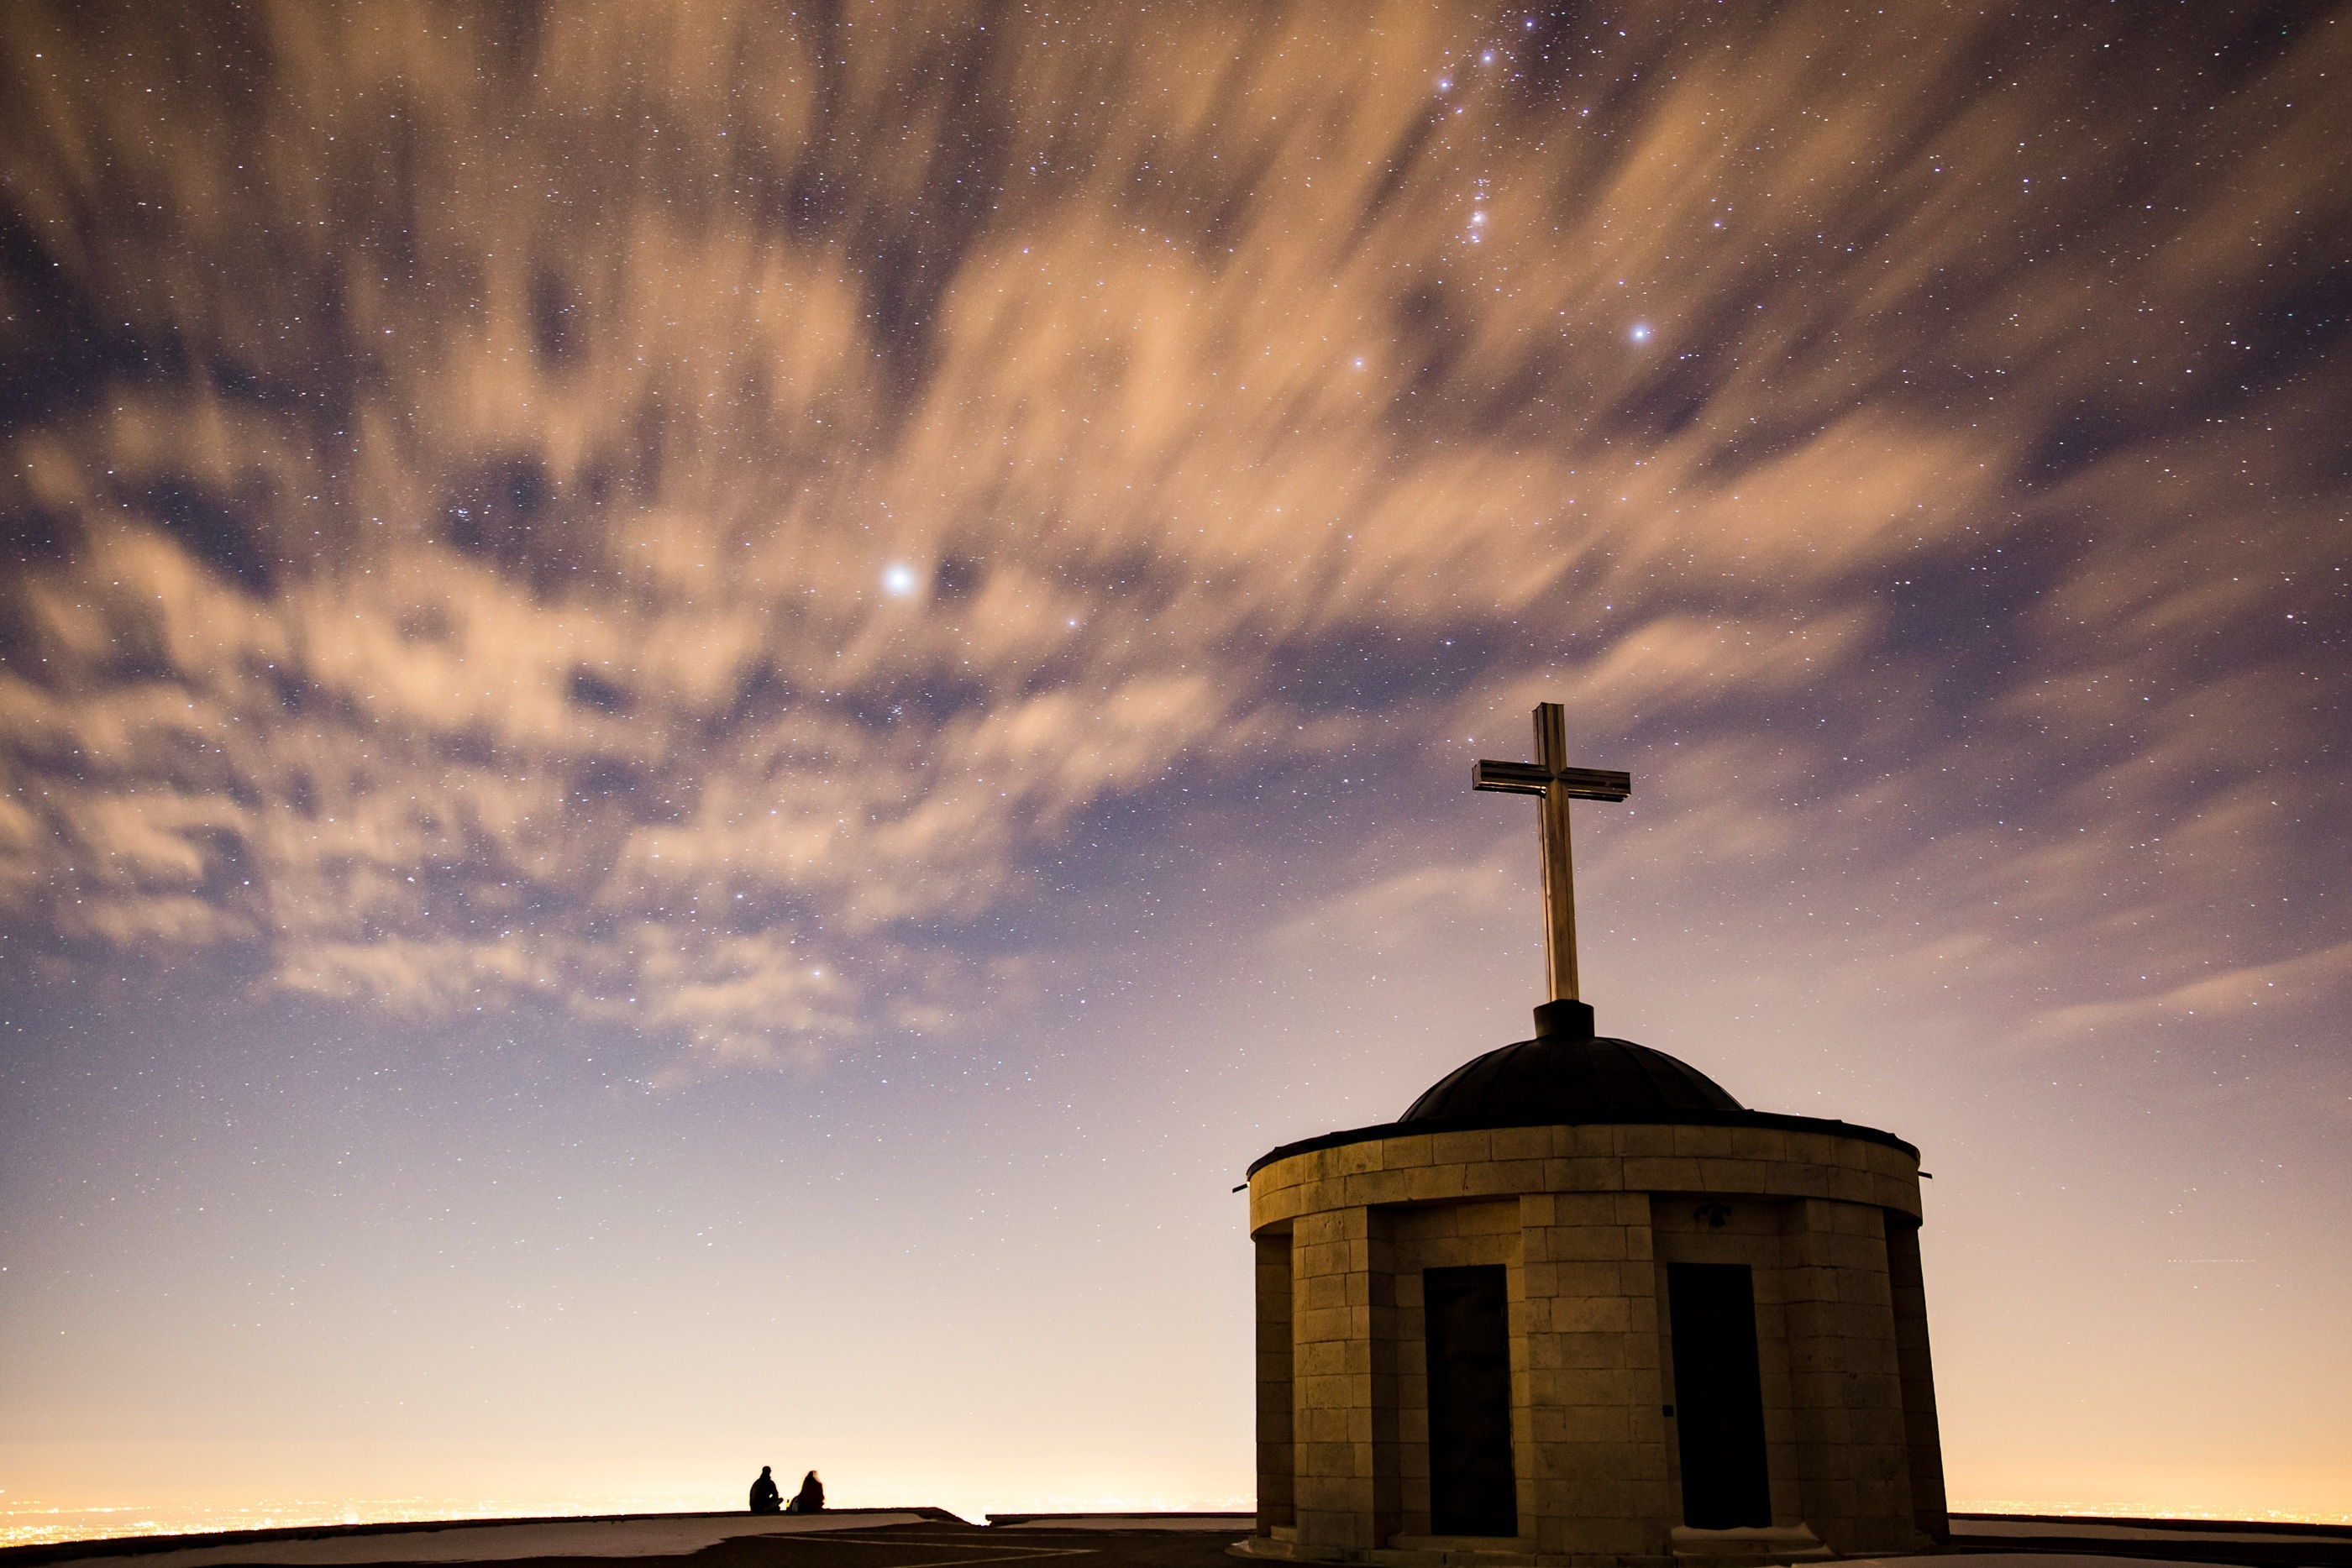 Best Wallpapers For Iphone 6 Hd Free Stock Photo Of Christian Church Cross